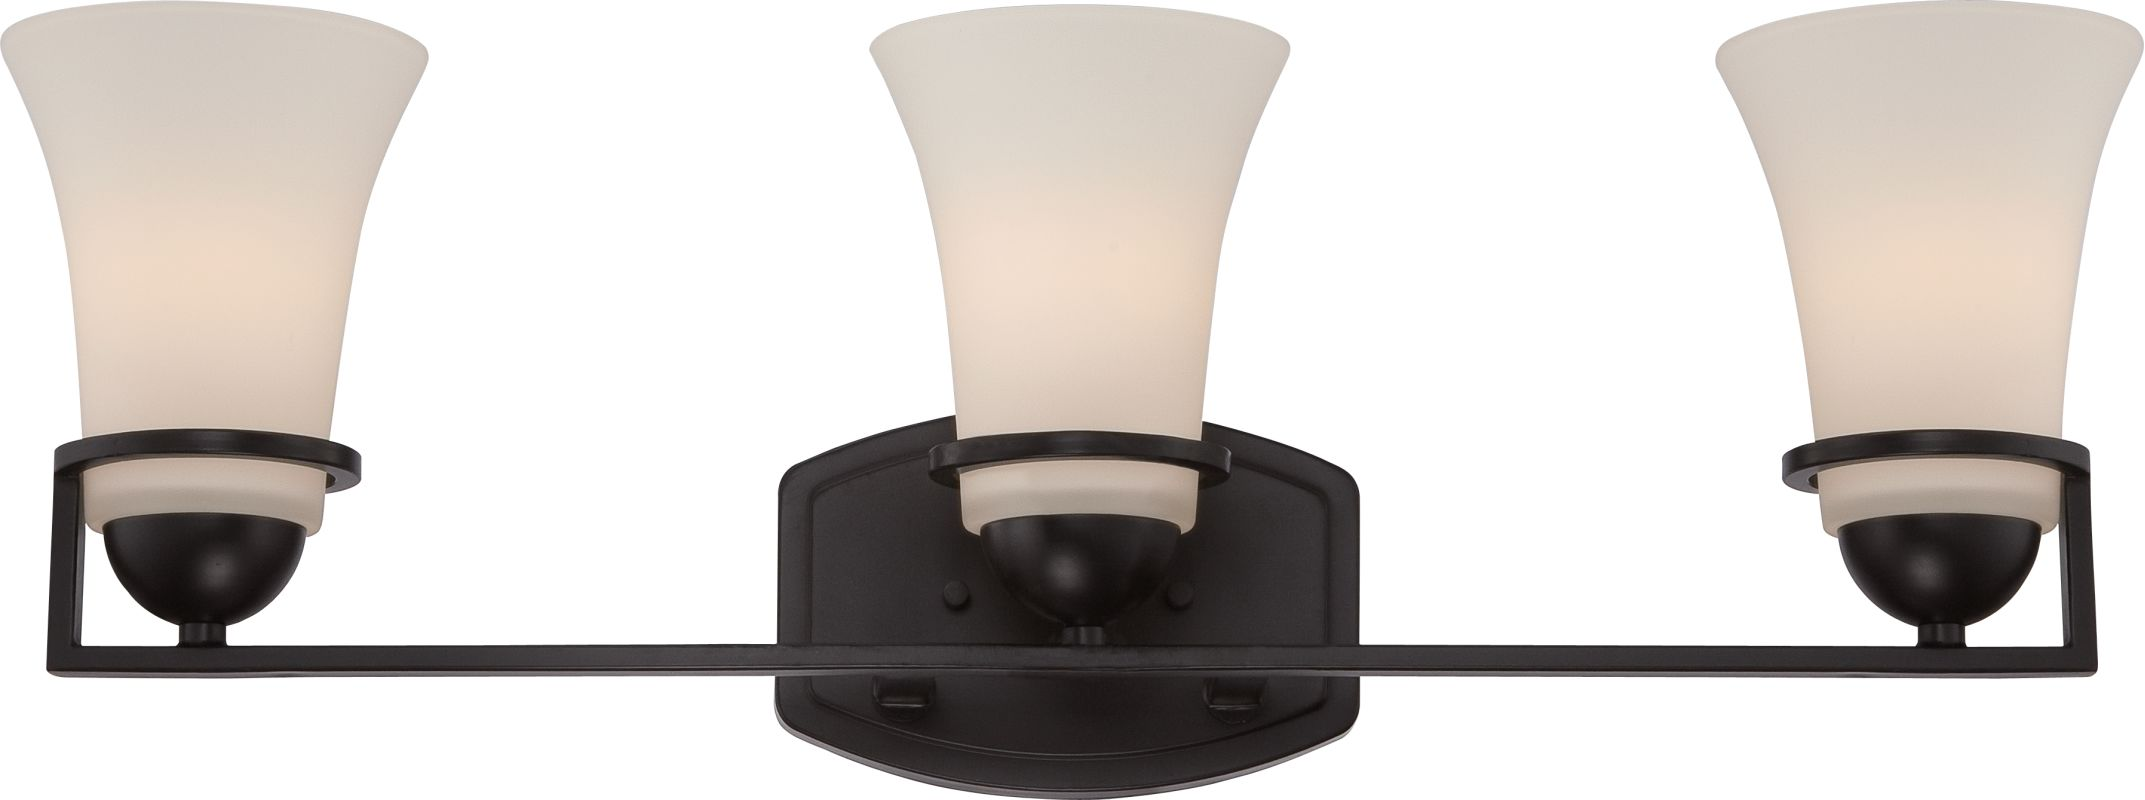 Nuvo Lighting 60/5583 Nevel 3 Light Bathroom Vanity Light in Sudbury Sale $129.99 ITEM: bci2590807 ID#:60/5583 UPC: 45923655838 :